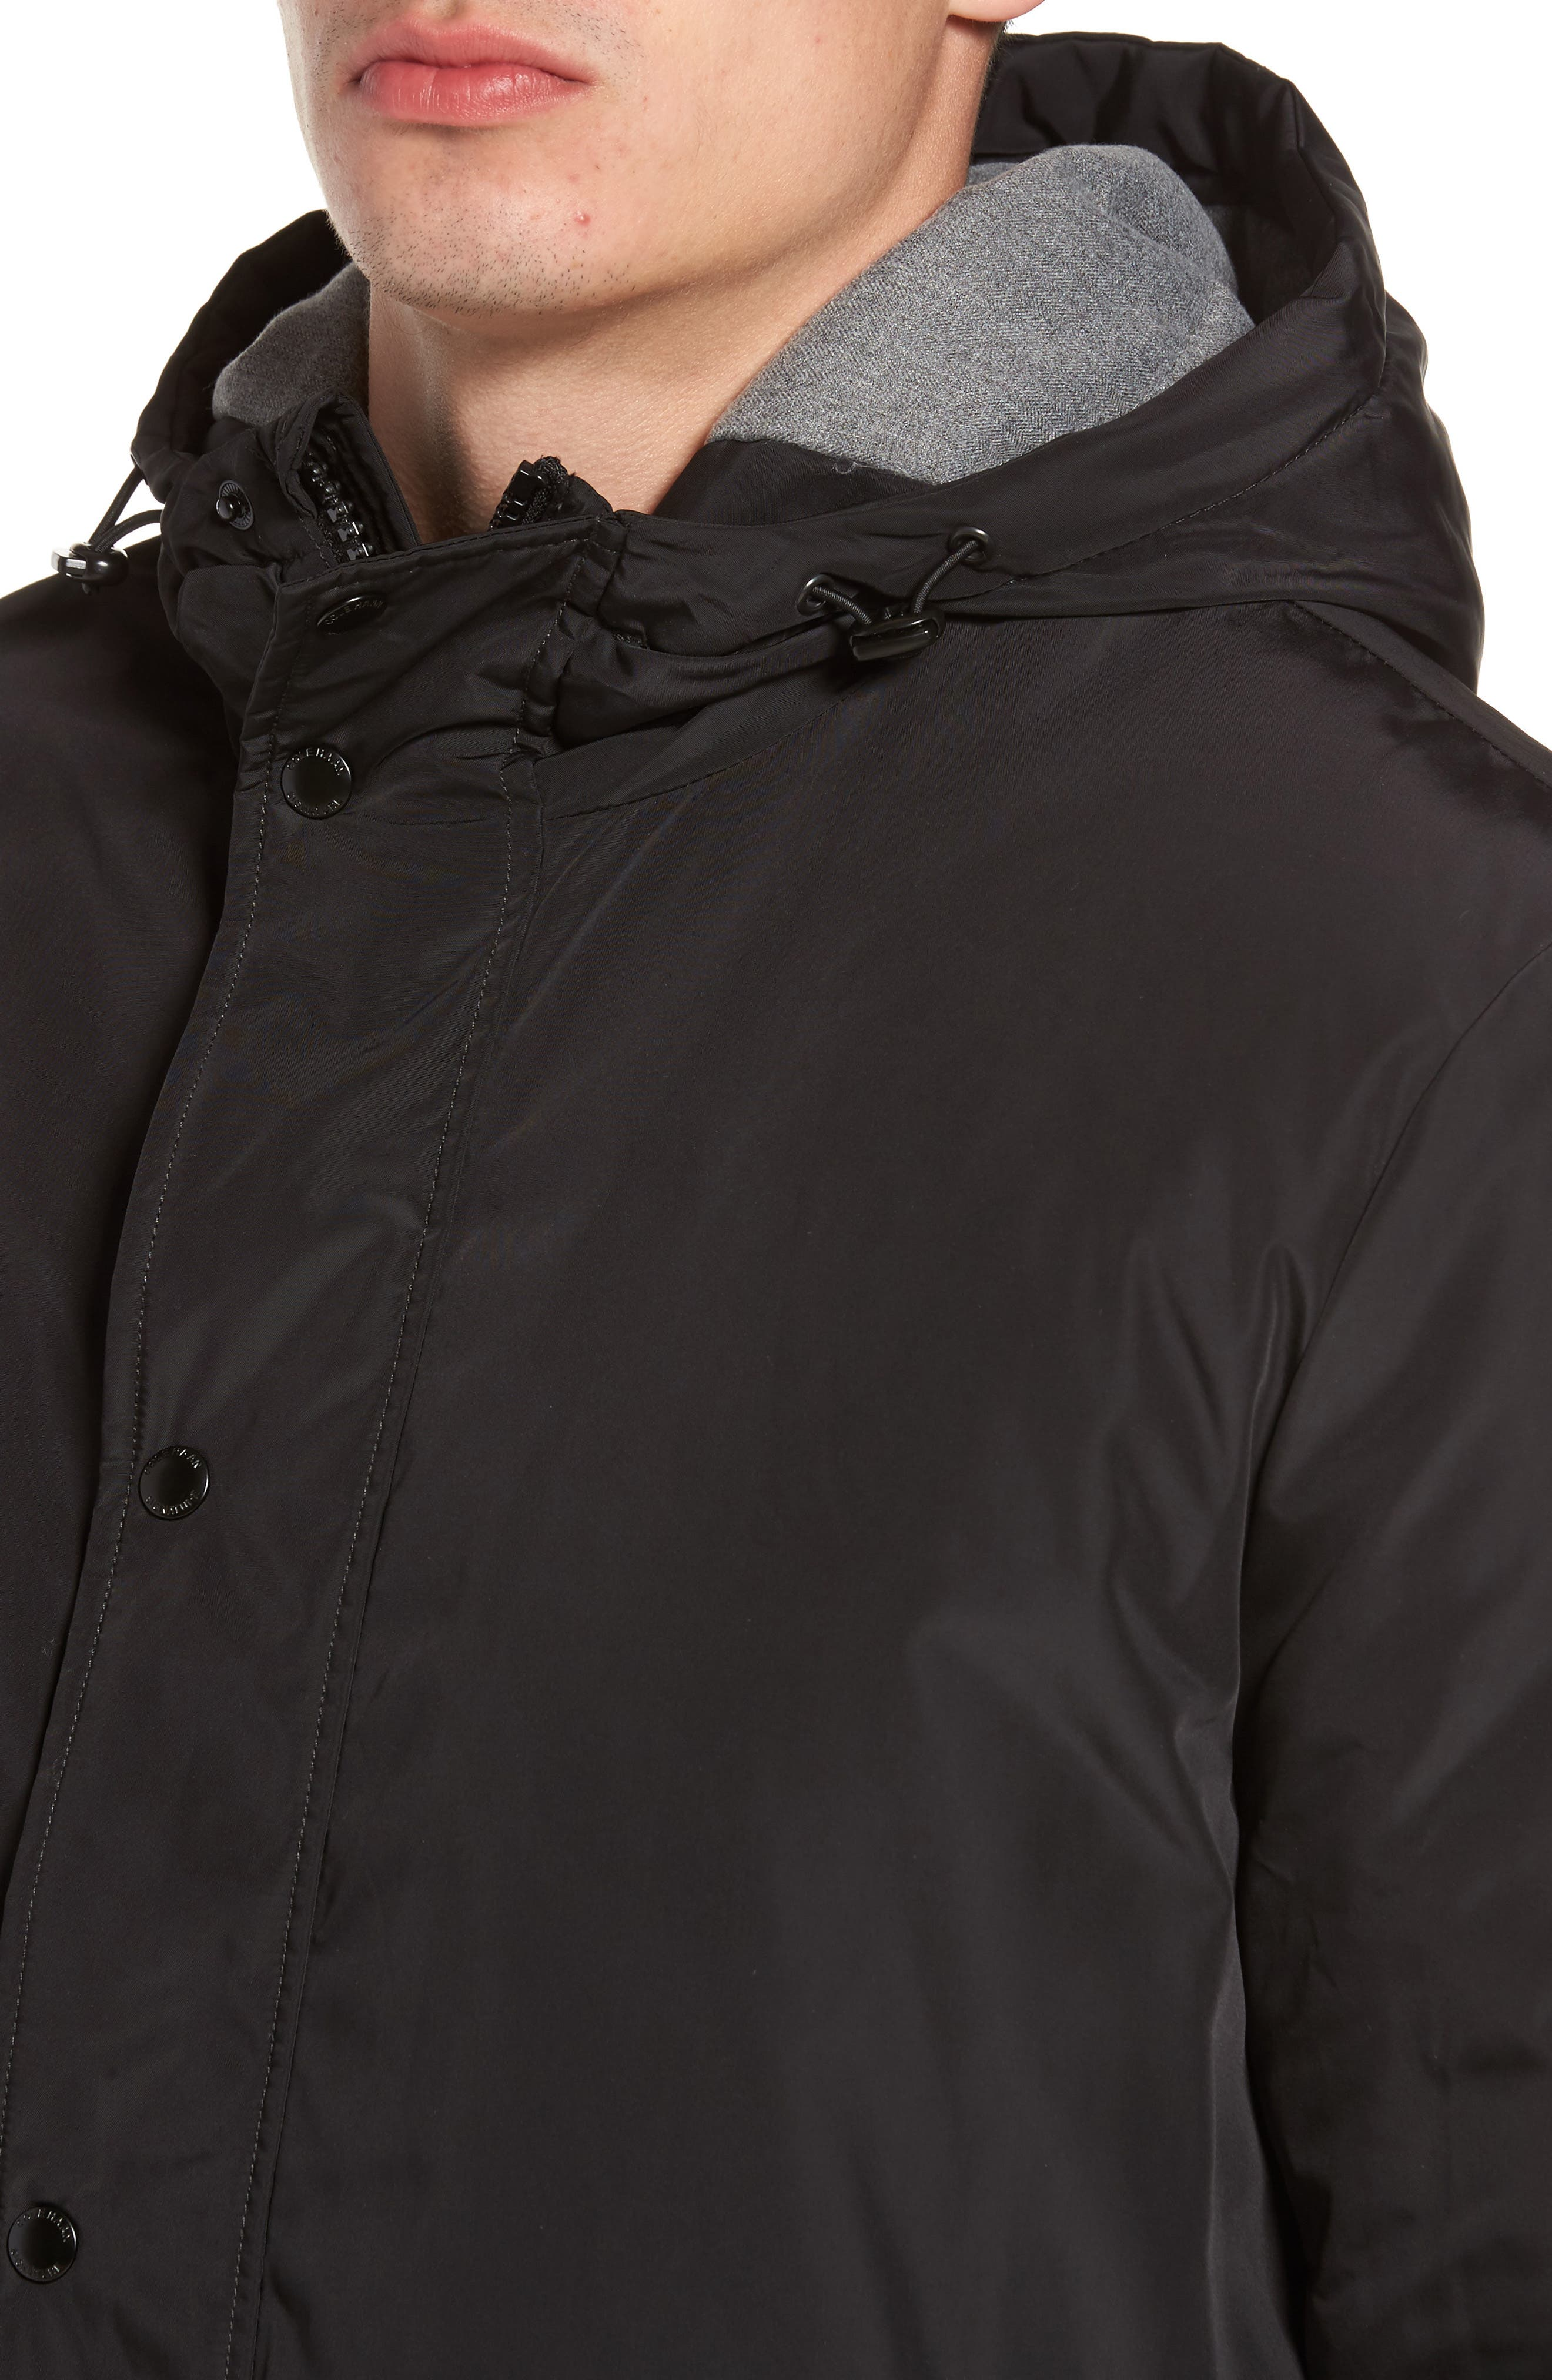 Water Resistant Insulated Jacket,                             Alternate thumbnail 4, color,                             Black